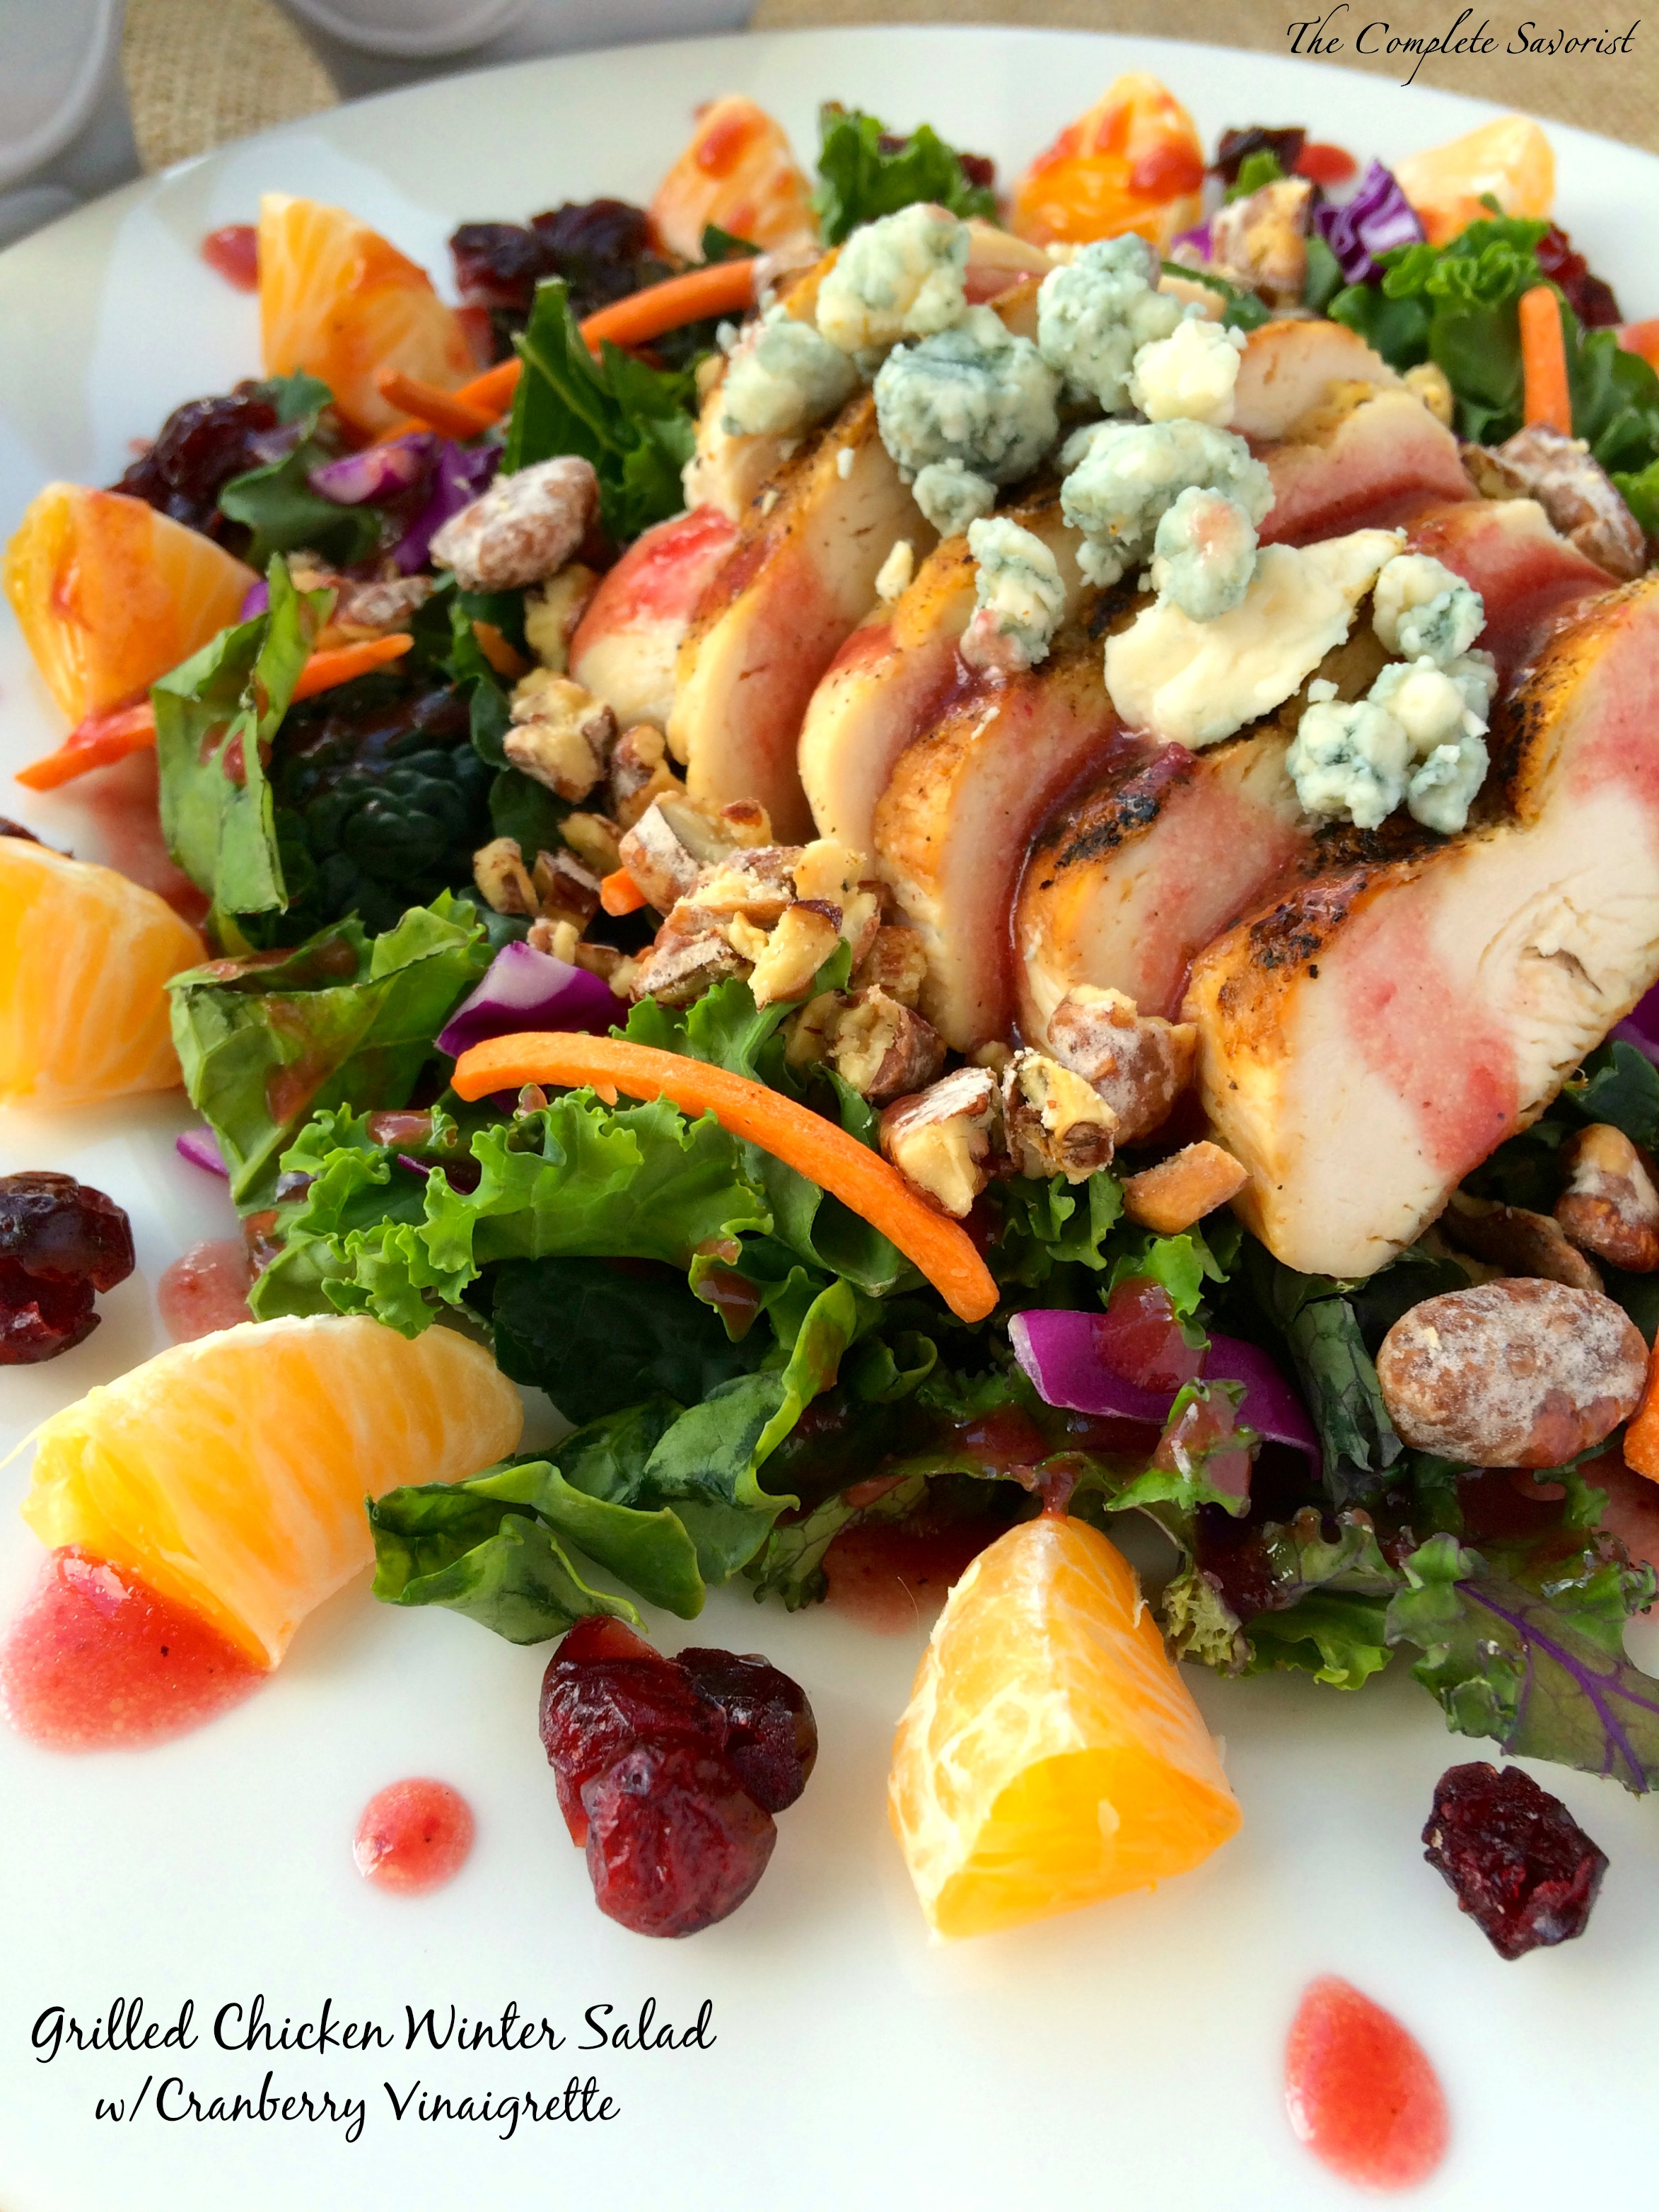 Grilled Chicken Winter Salad with Cranberry Vinaigrette ~ The Complete Savoirst